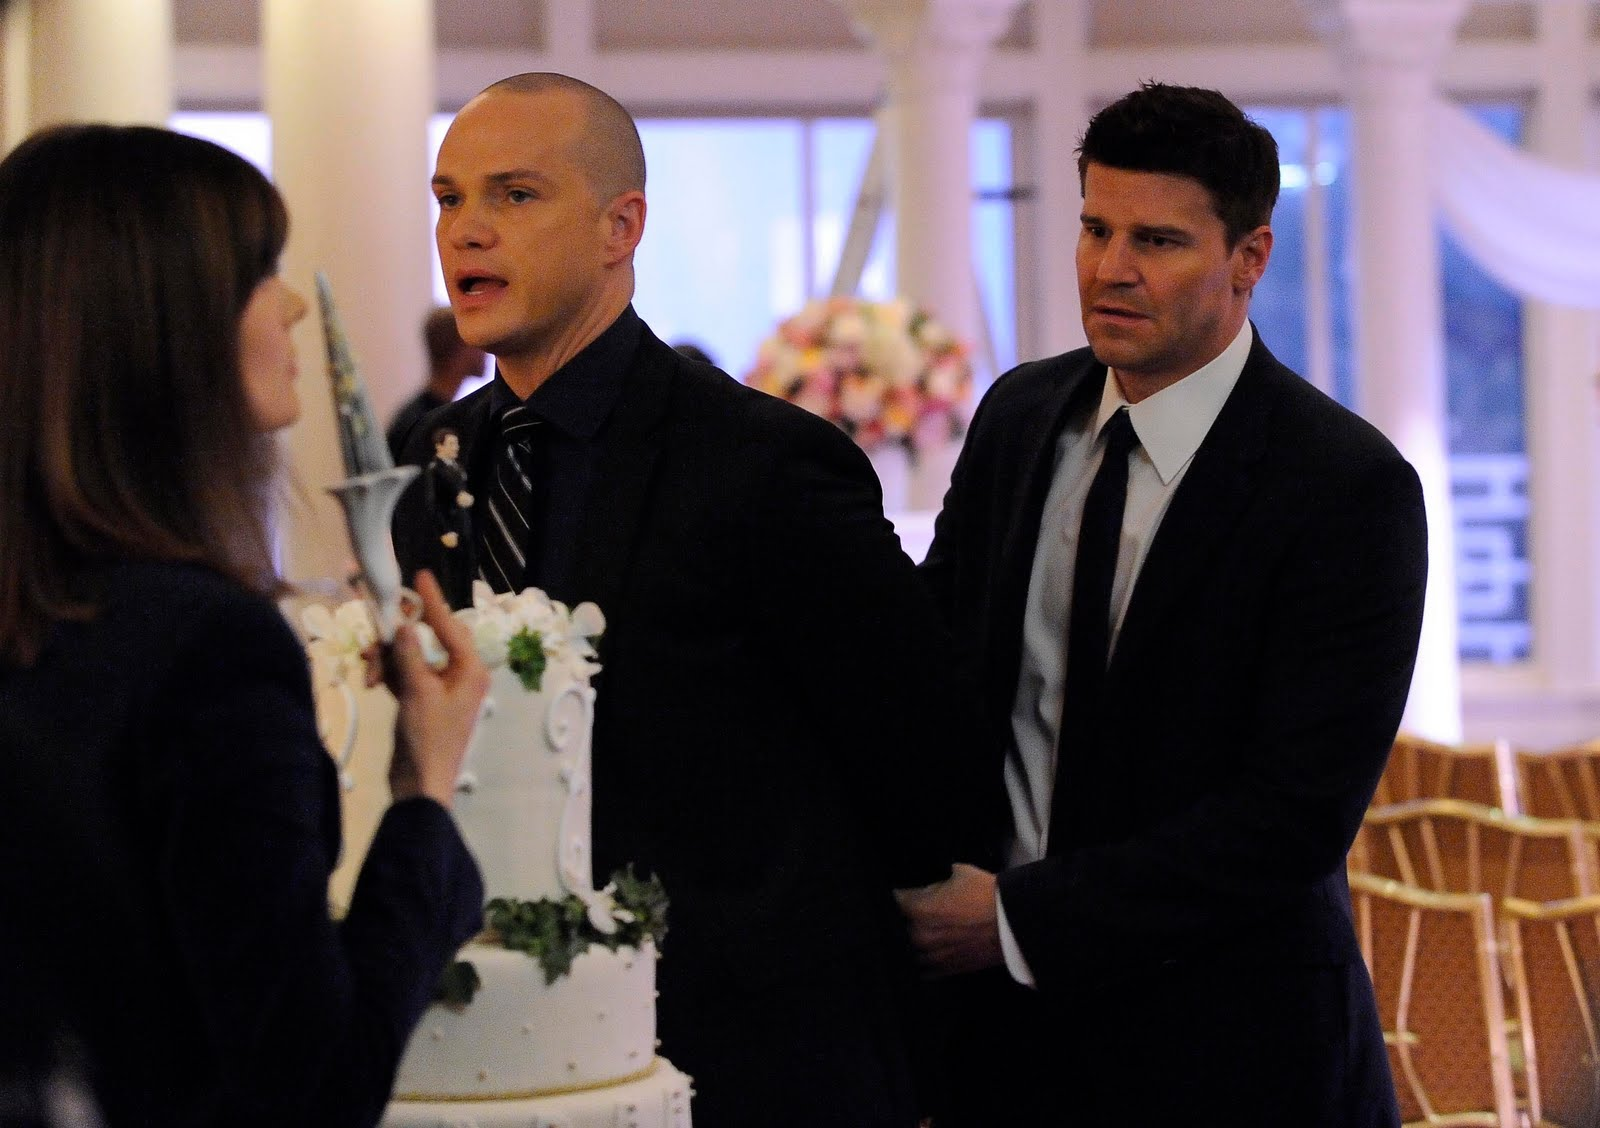 bones brennan and booth dating In the tv show bones, when do dr brennan and agent booth start dating also, when do in the tv show bones, why is brennan partners with booth.